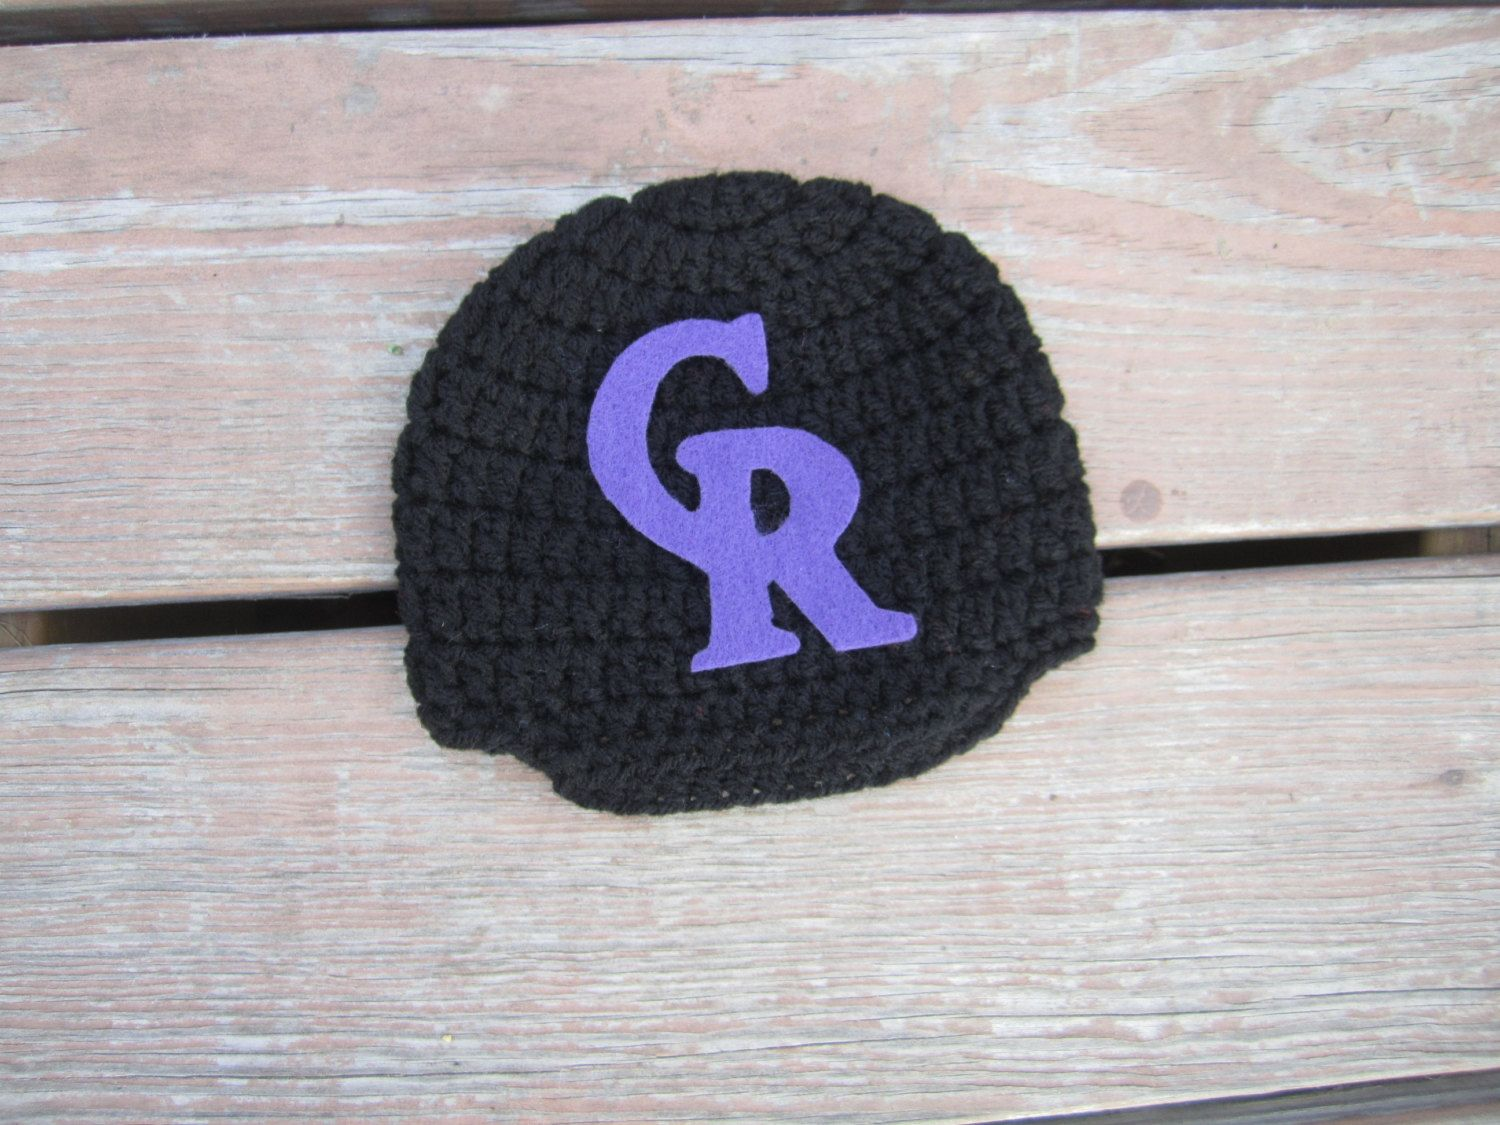 Newborn Colorado Rockies  baby cap,crochet baby cap,Colorado Rockies boy cap,Colorado Rockies baby girl beanie hat photo prop shower gift by Etvy on Etsy